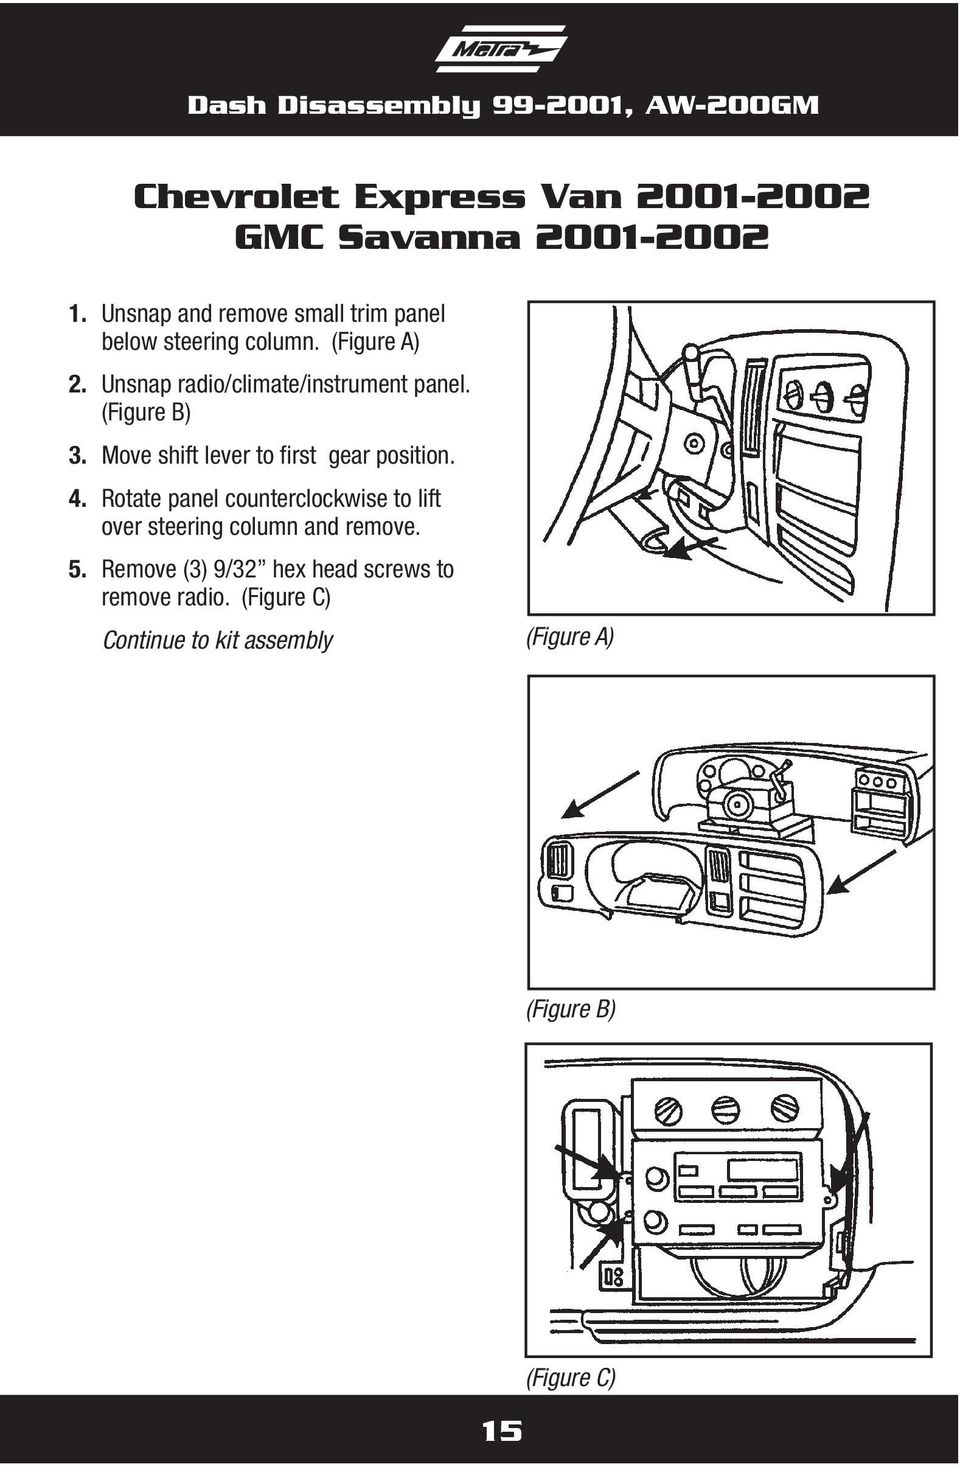 Unsnap radio/climate/instrument panel. (Figure B) 3. Move shift lever to first gear position. 4.